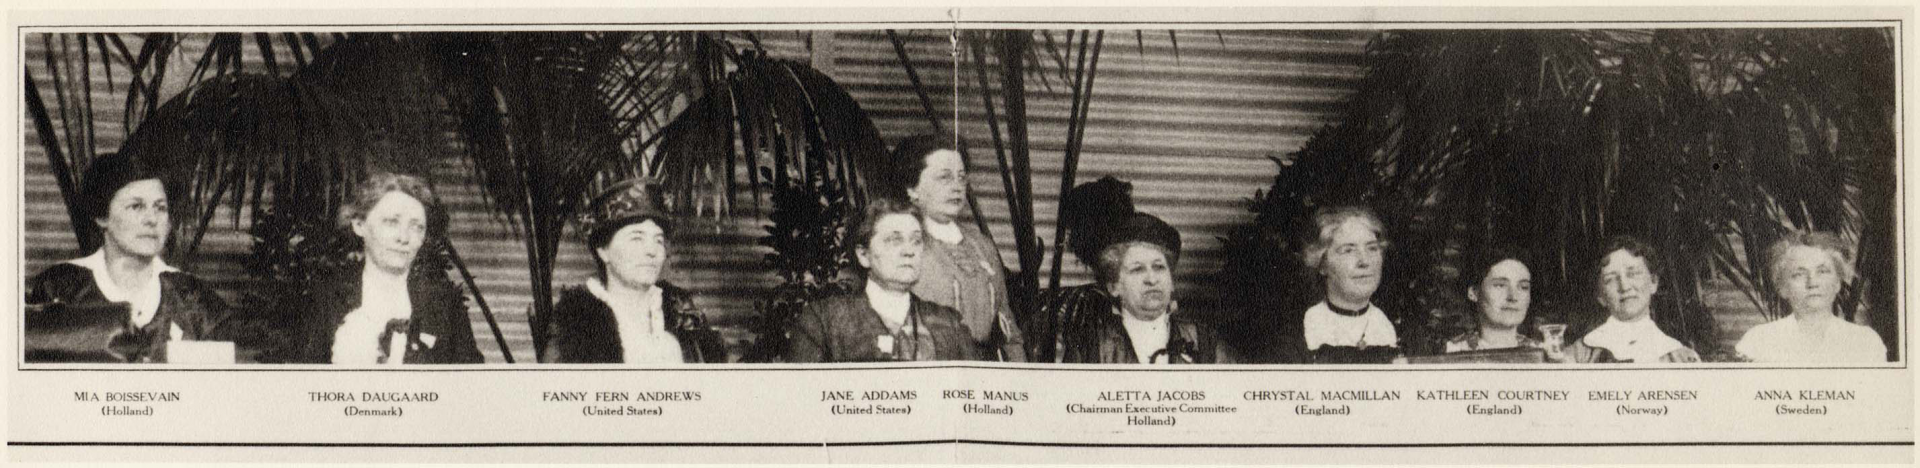 officers_of_the_international_congress_of_women_for_a_permanent_peace_the_hague_1915